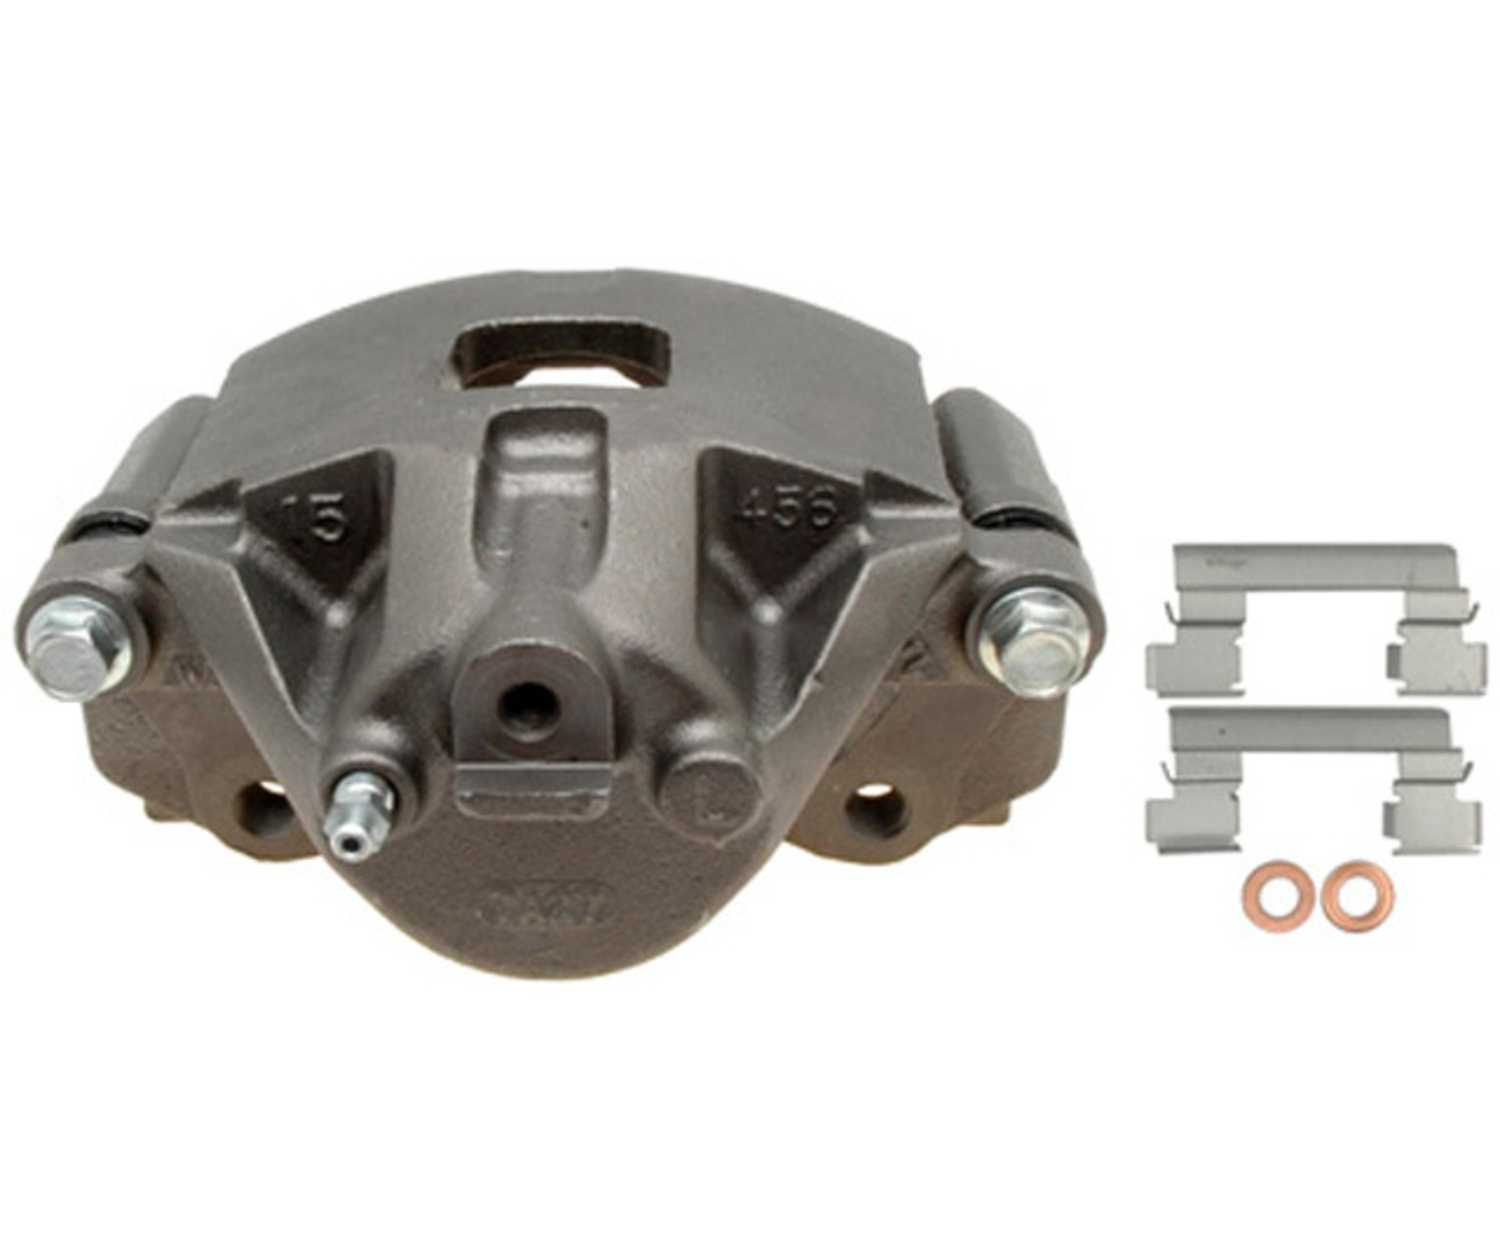 RAYBESTOS - R-Line; Friction-Ready Caliper, Remanufactured; Includes Bracket - RAY FRC10907